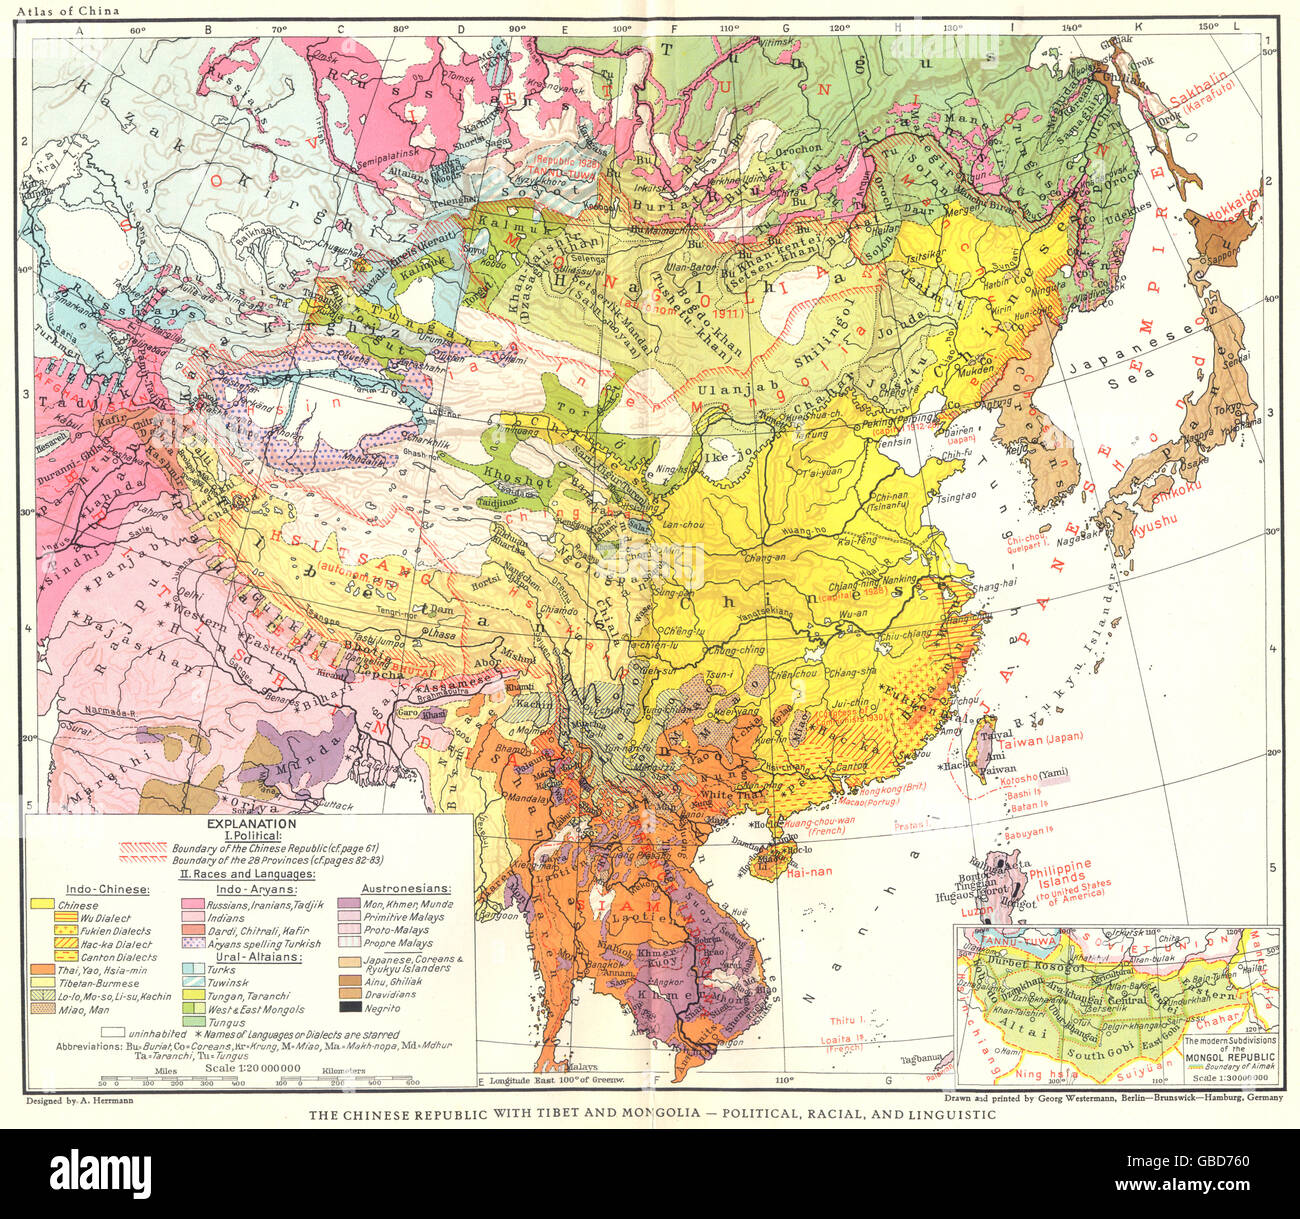 Linguistic Map Of China.China Political Map Stock Photos China Political Map Stock Images